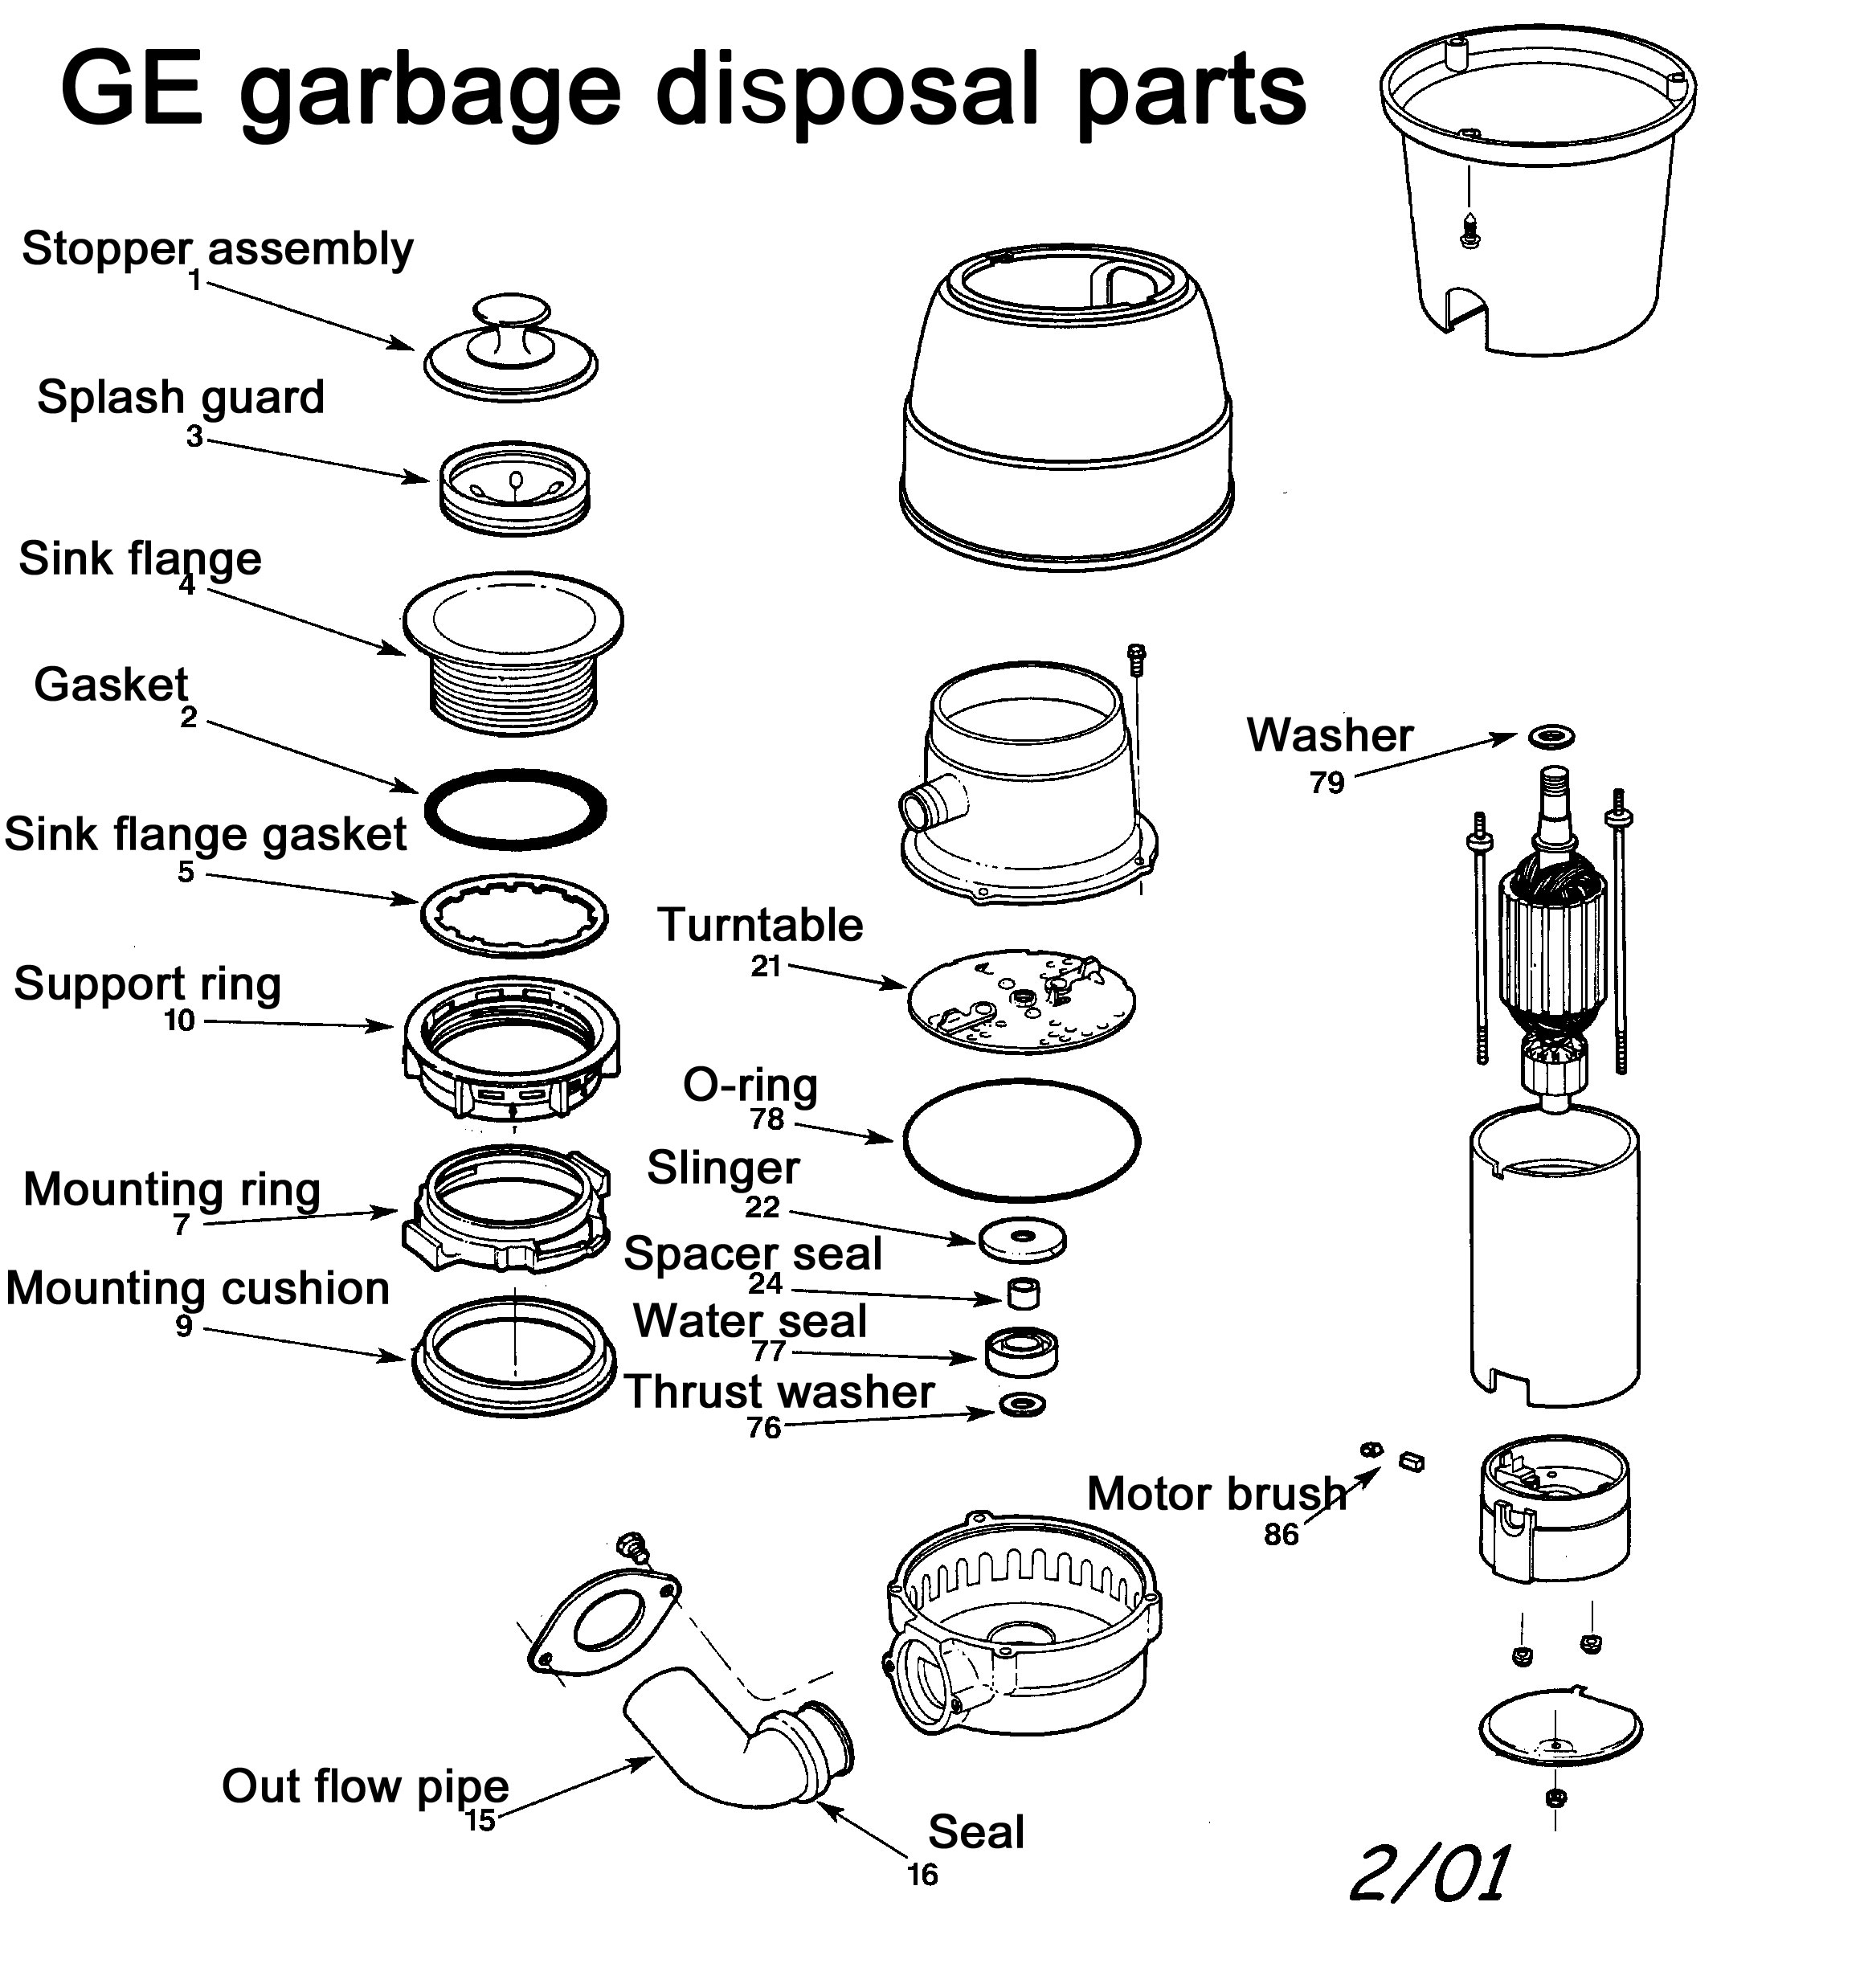 Garbage Disposal Parts. Exploded Image Of GE Parts ...